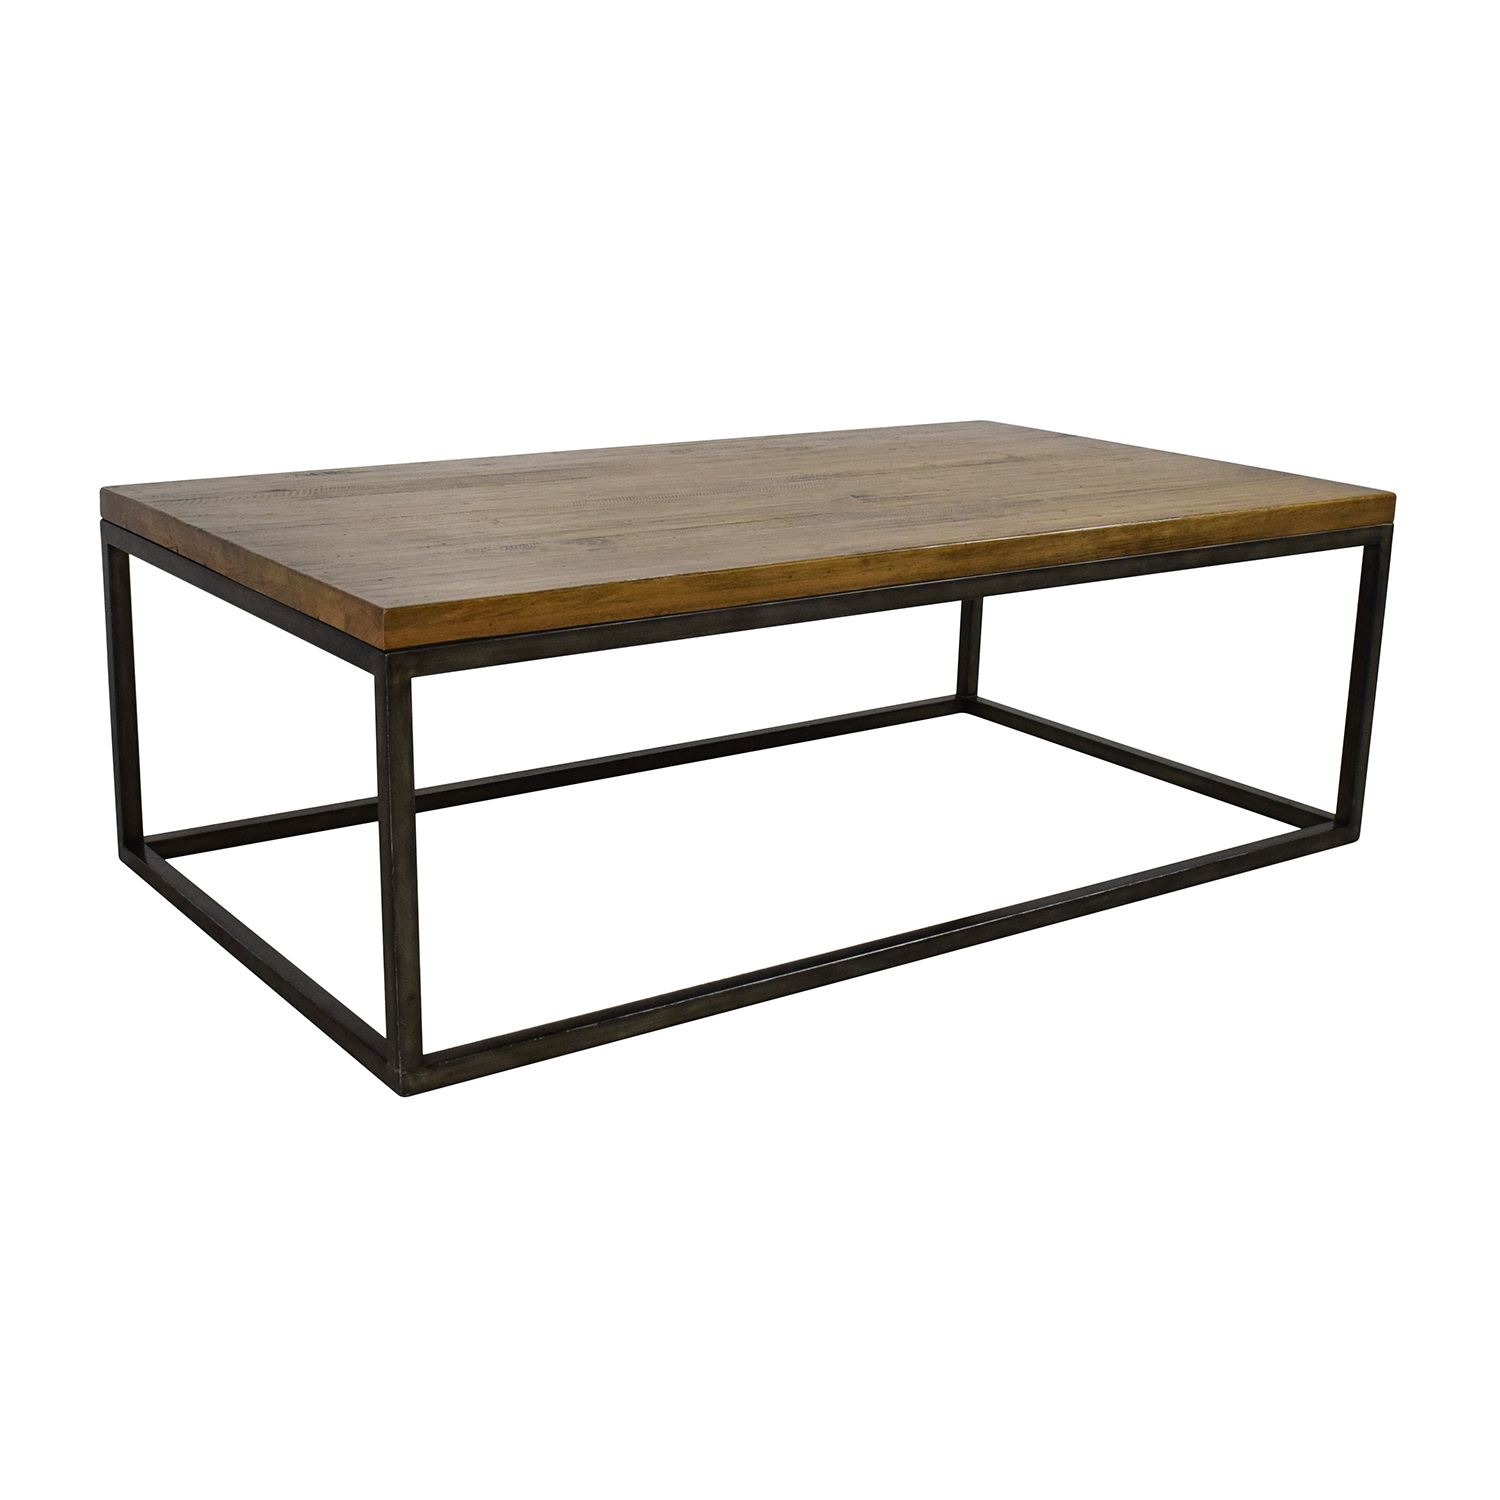 51 off west elm west elm box frame coffee table tables for West elm geometric coffee table